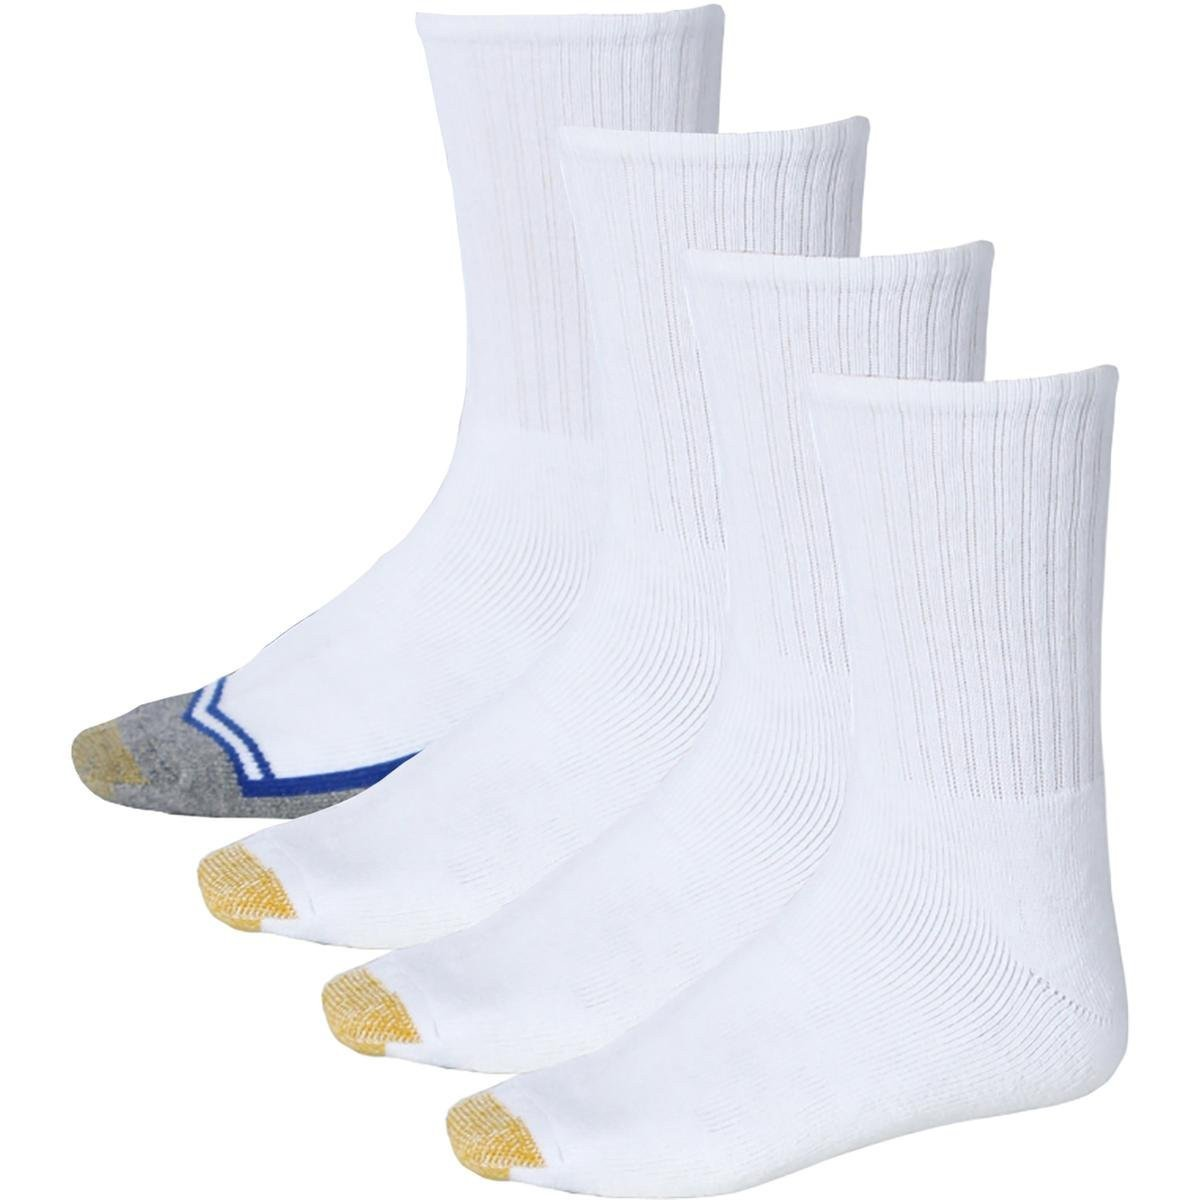 This Gold Toe Crew Socks 4 Pack